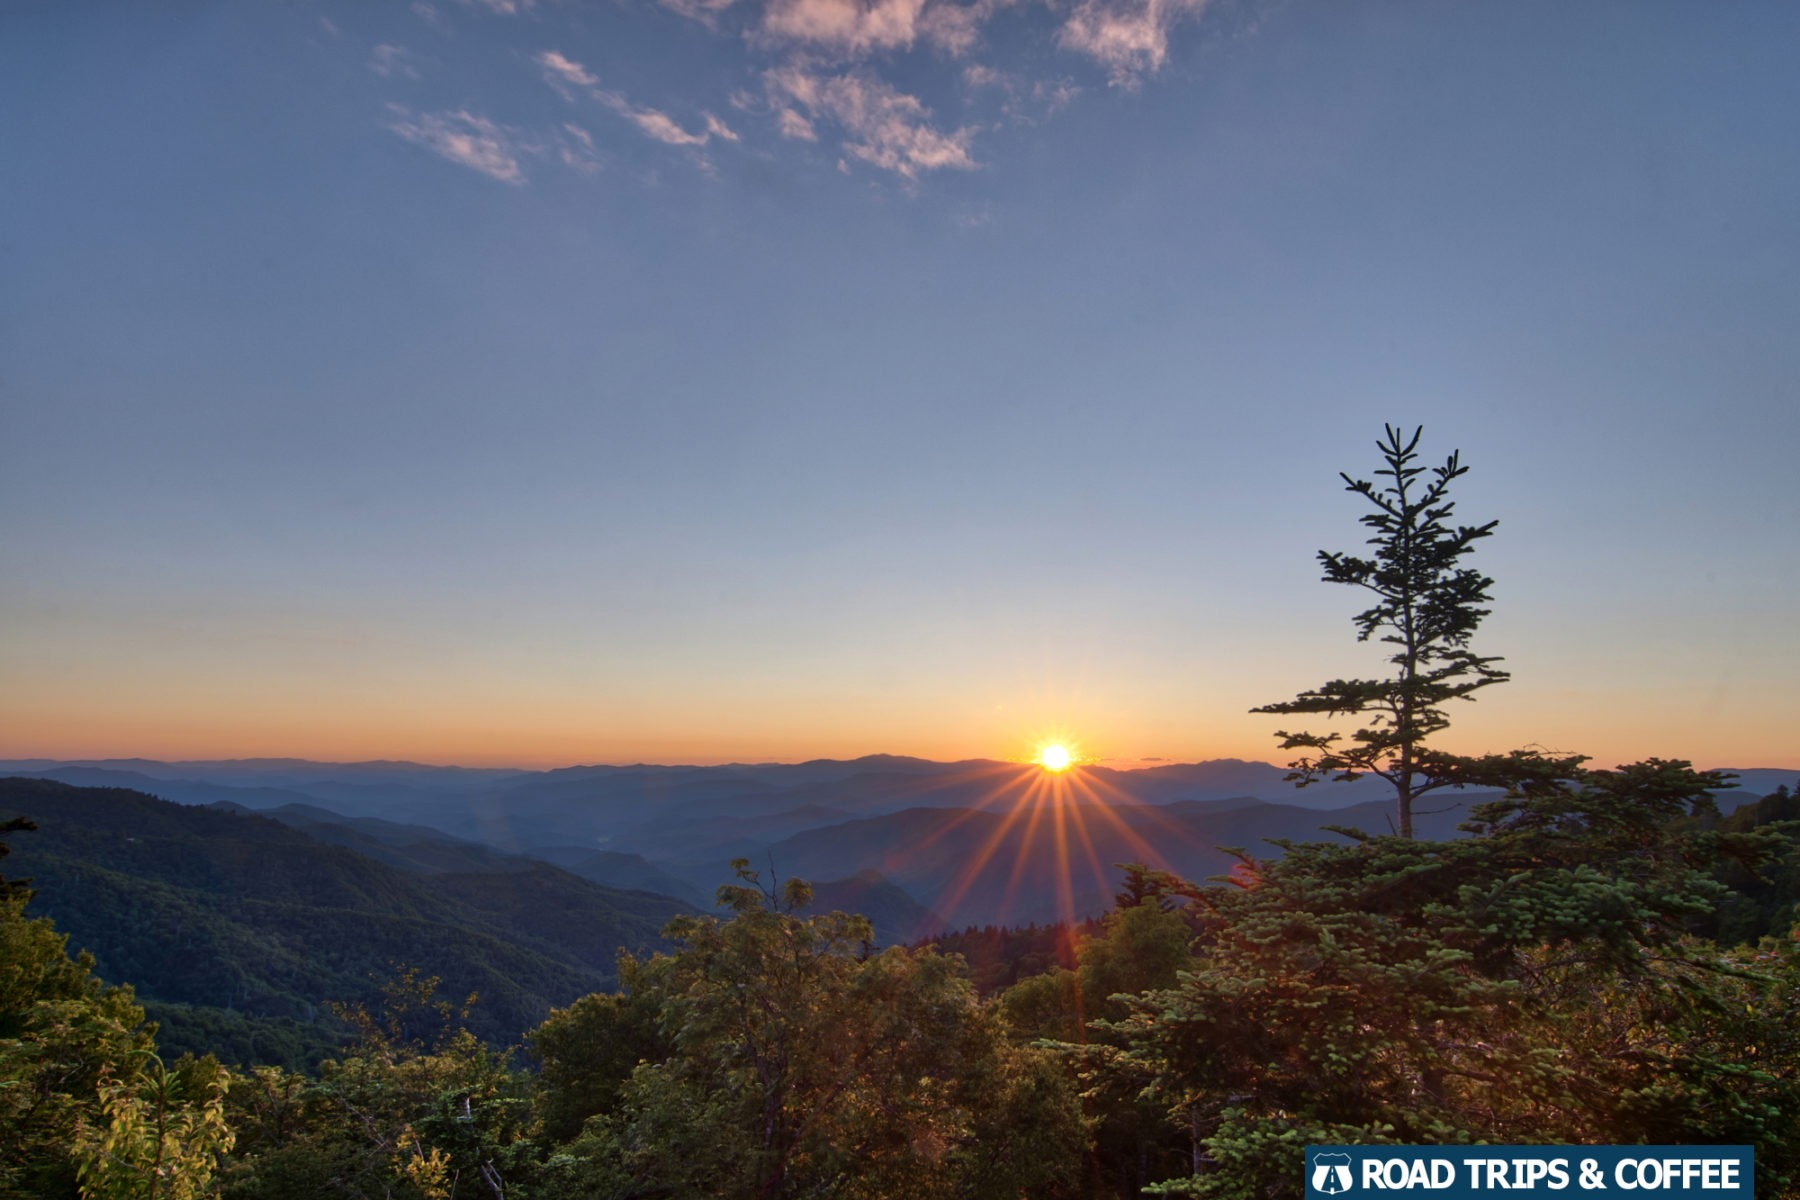 A cool sunset view from Waterrock Knob on the Blue Ridge Parkway in North Carolina